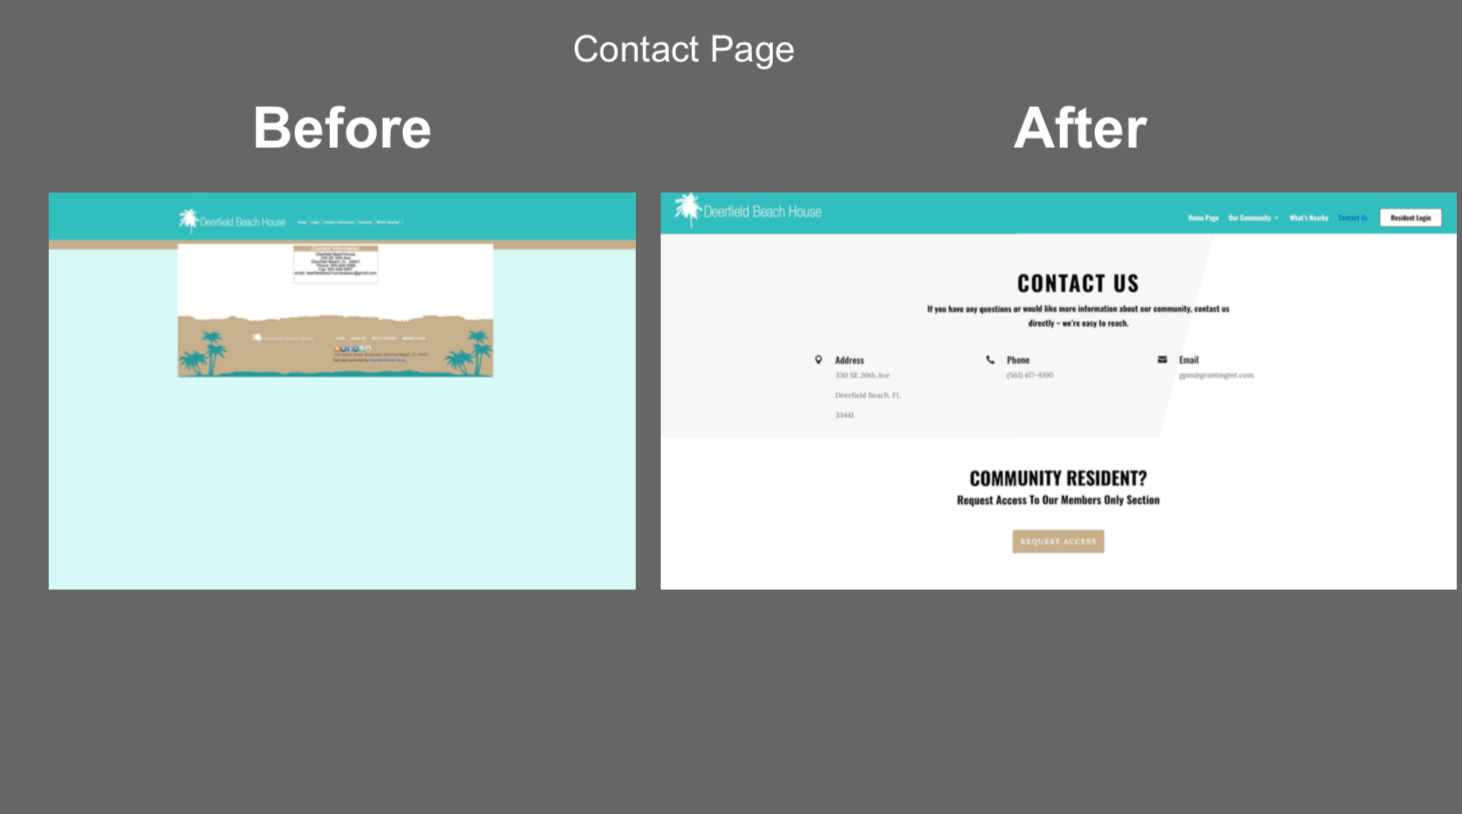 hoa website contact us page before and after picture